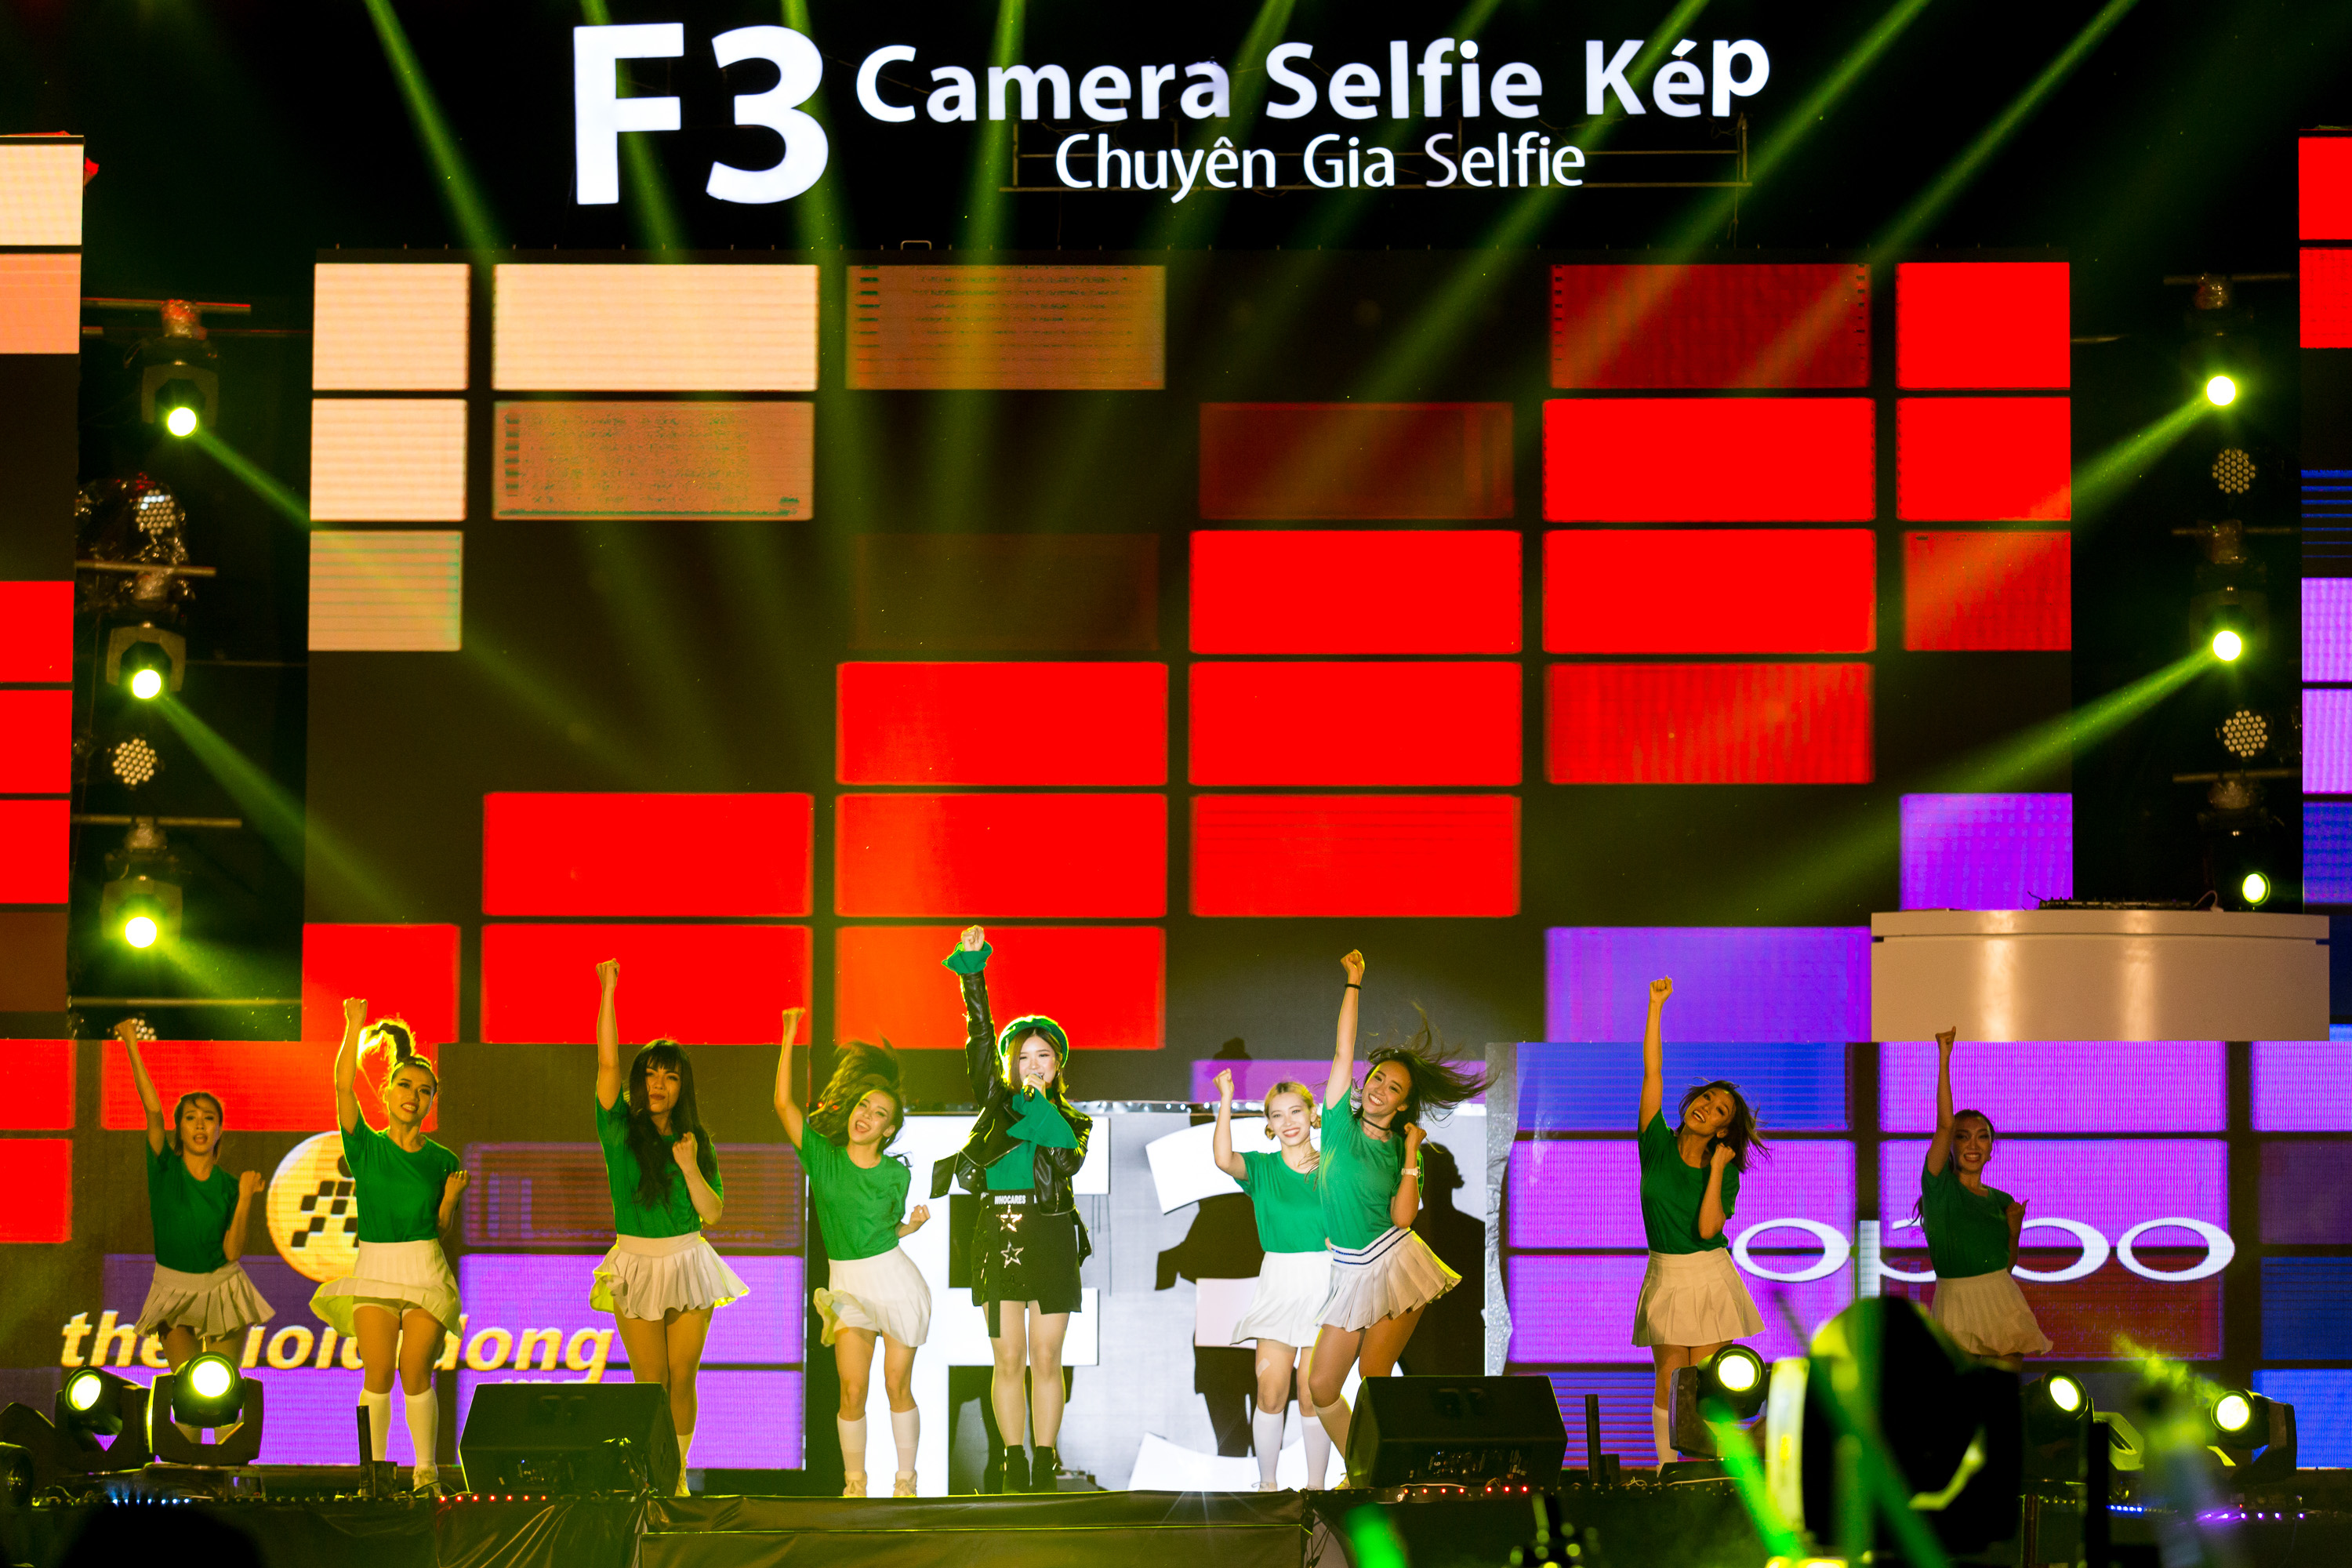 oppo f3 show - 5